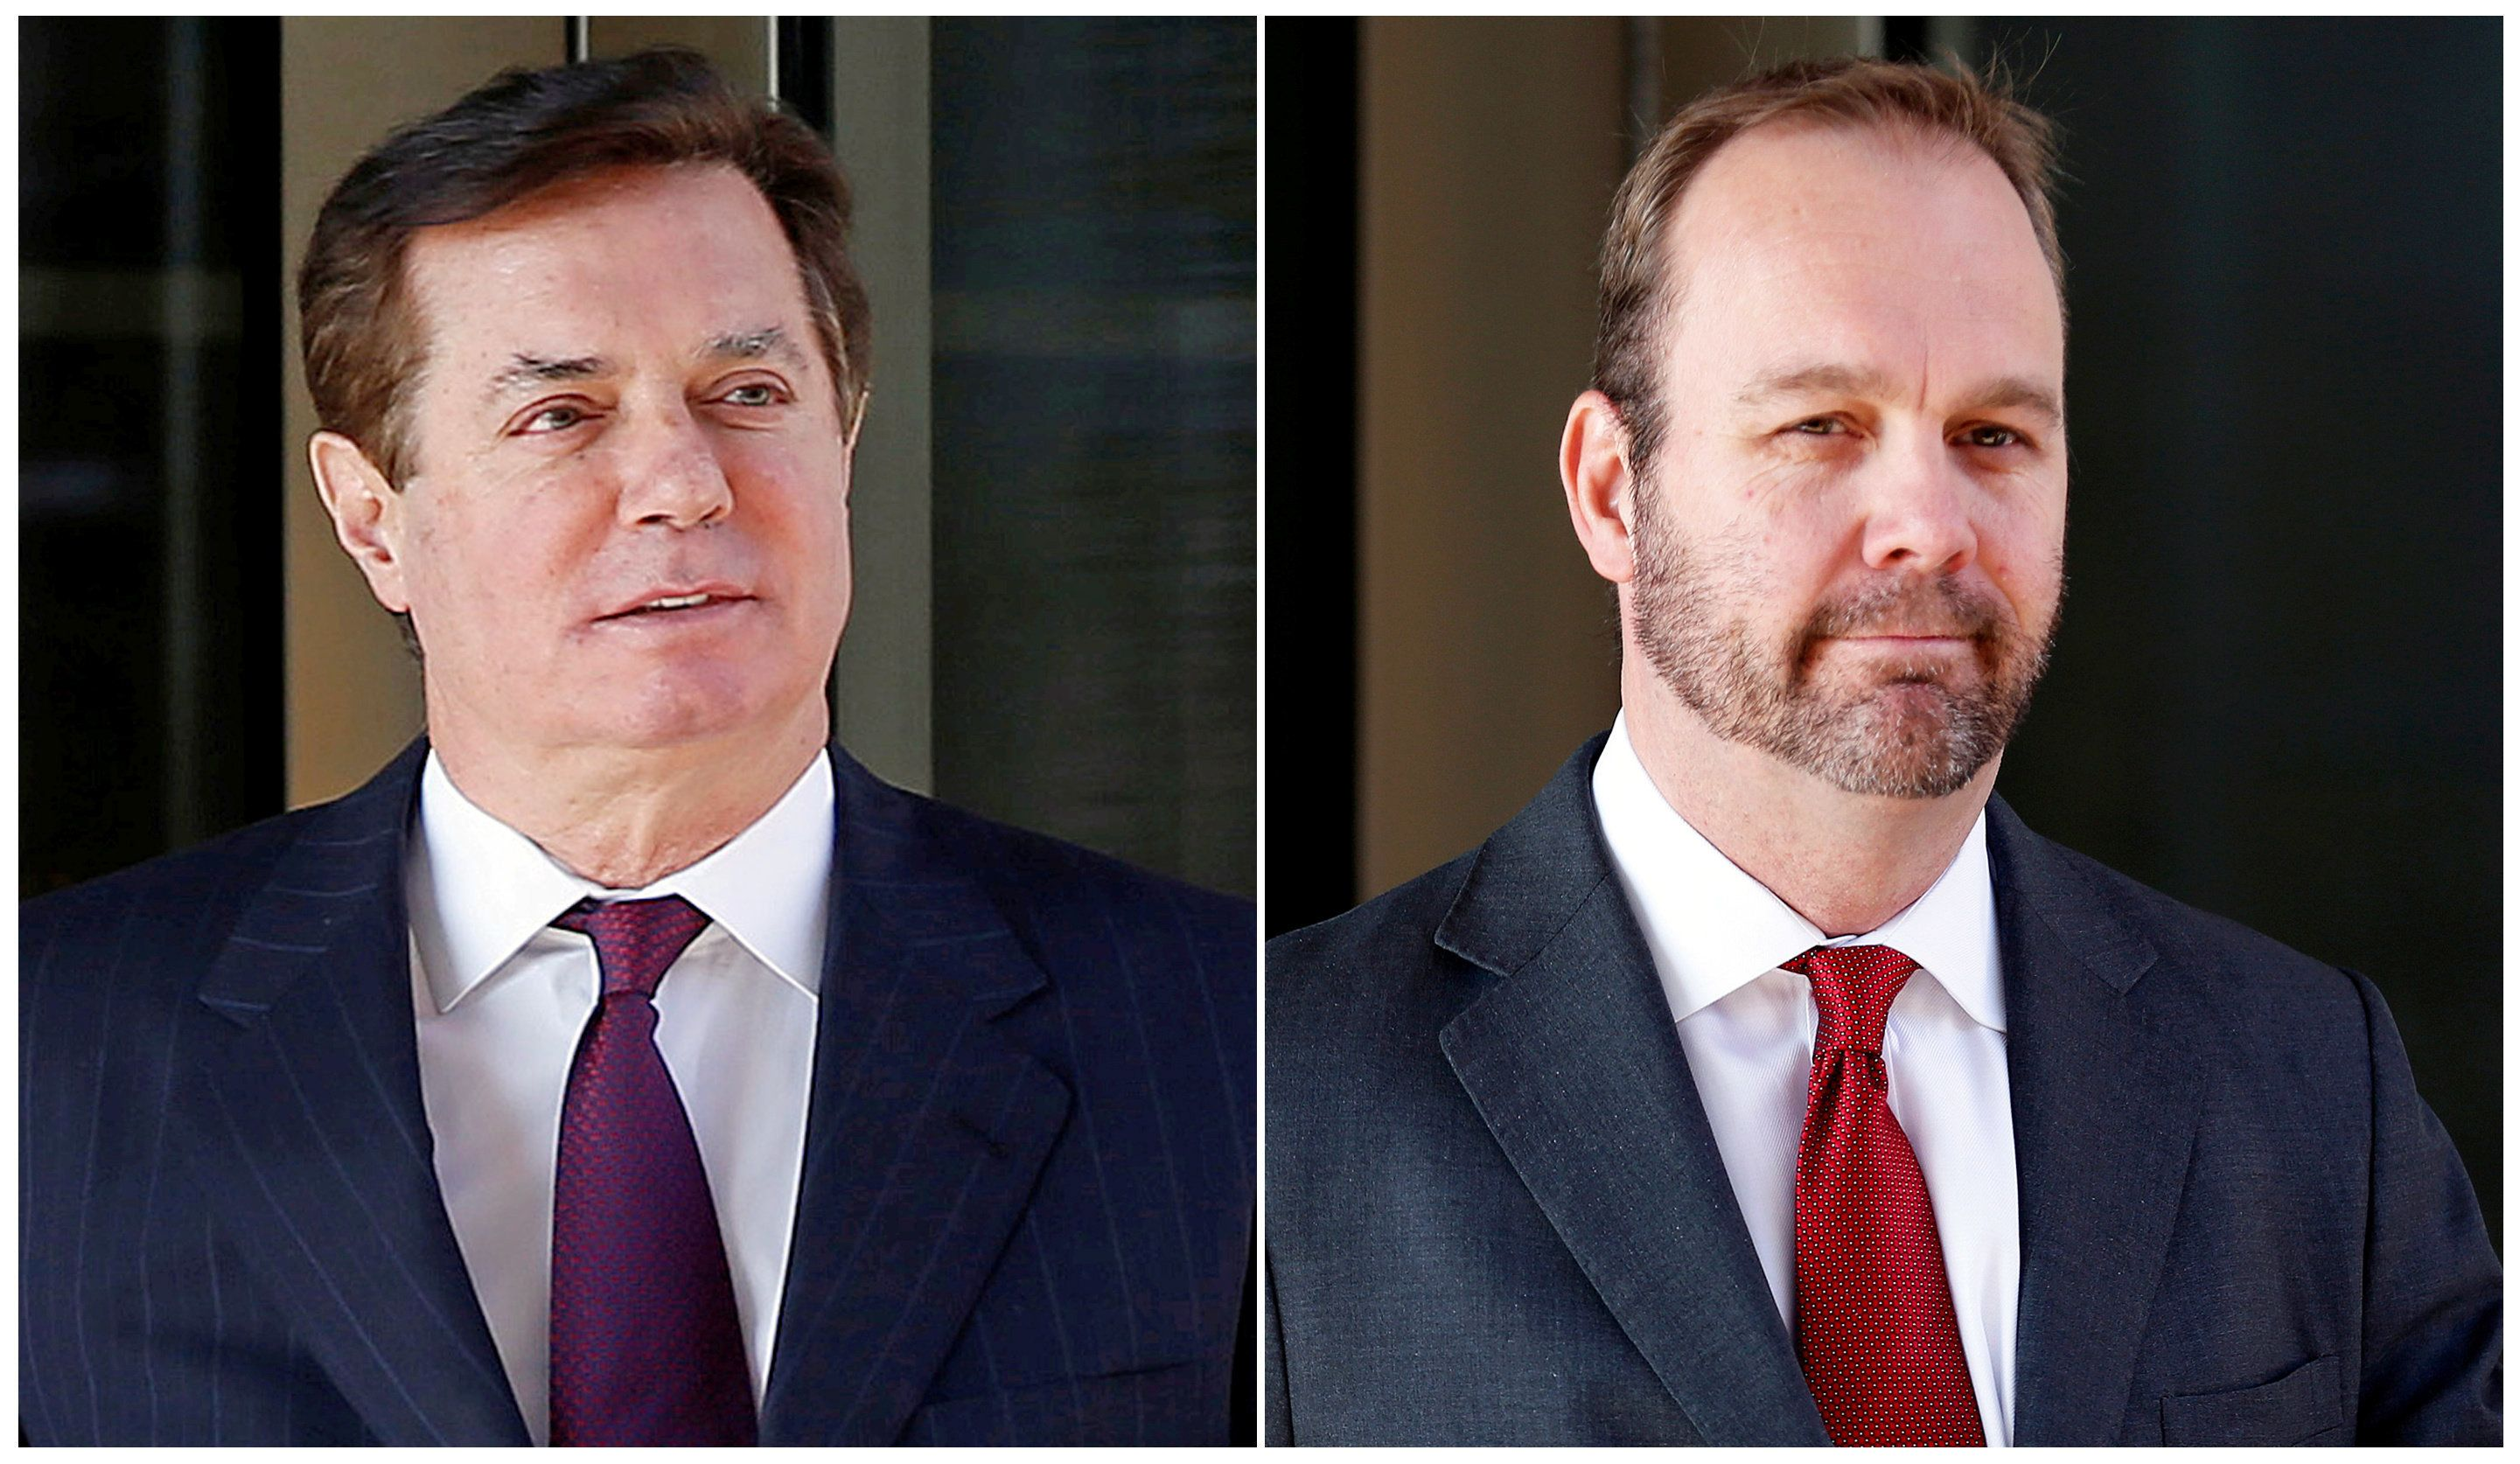 Manafort team attacks star witness over affair, fraud and 'so many lies'